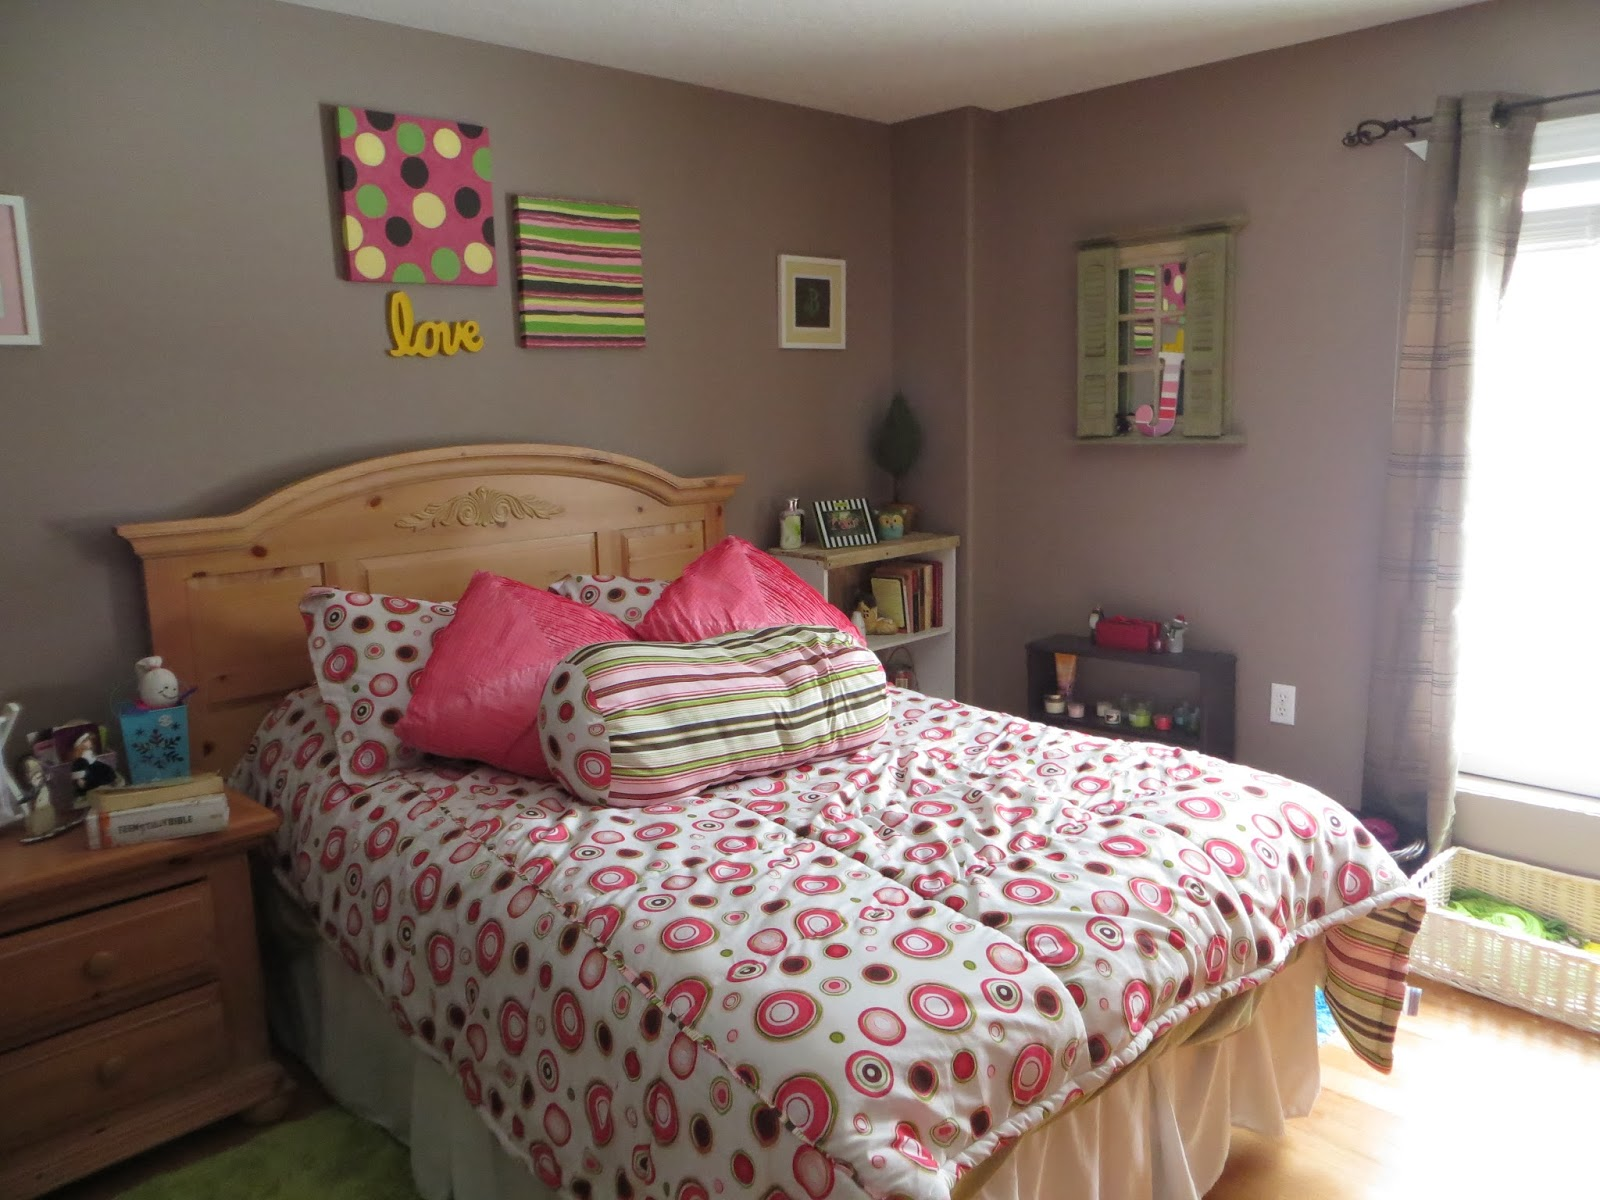 Room Ideas Hipster Is DIY Teen Girls Decor We Had A Lot Of Fun